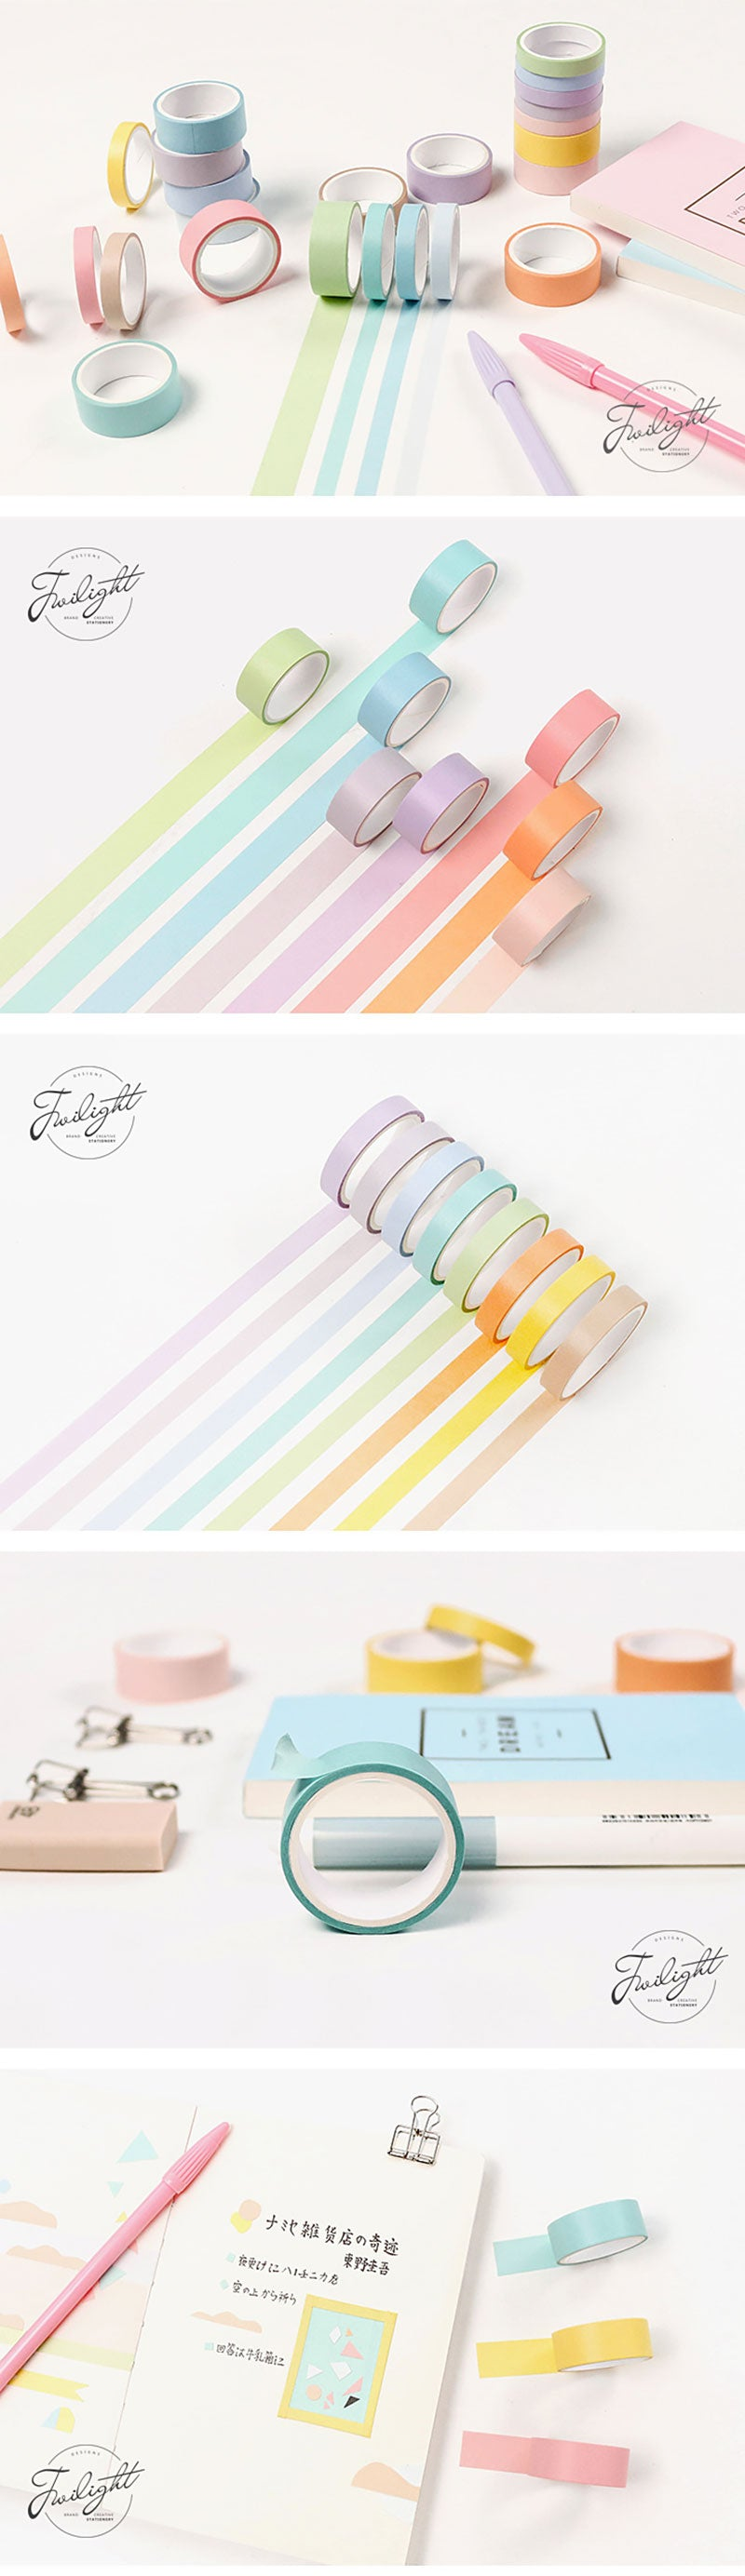 7 Pastel Colors Washi Tape 12 Rolls Set - Detail